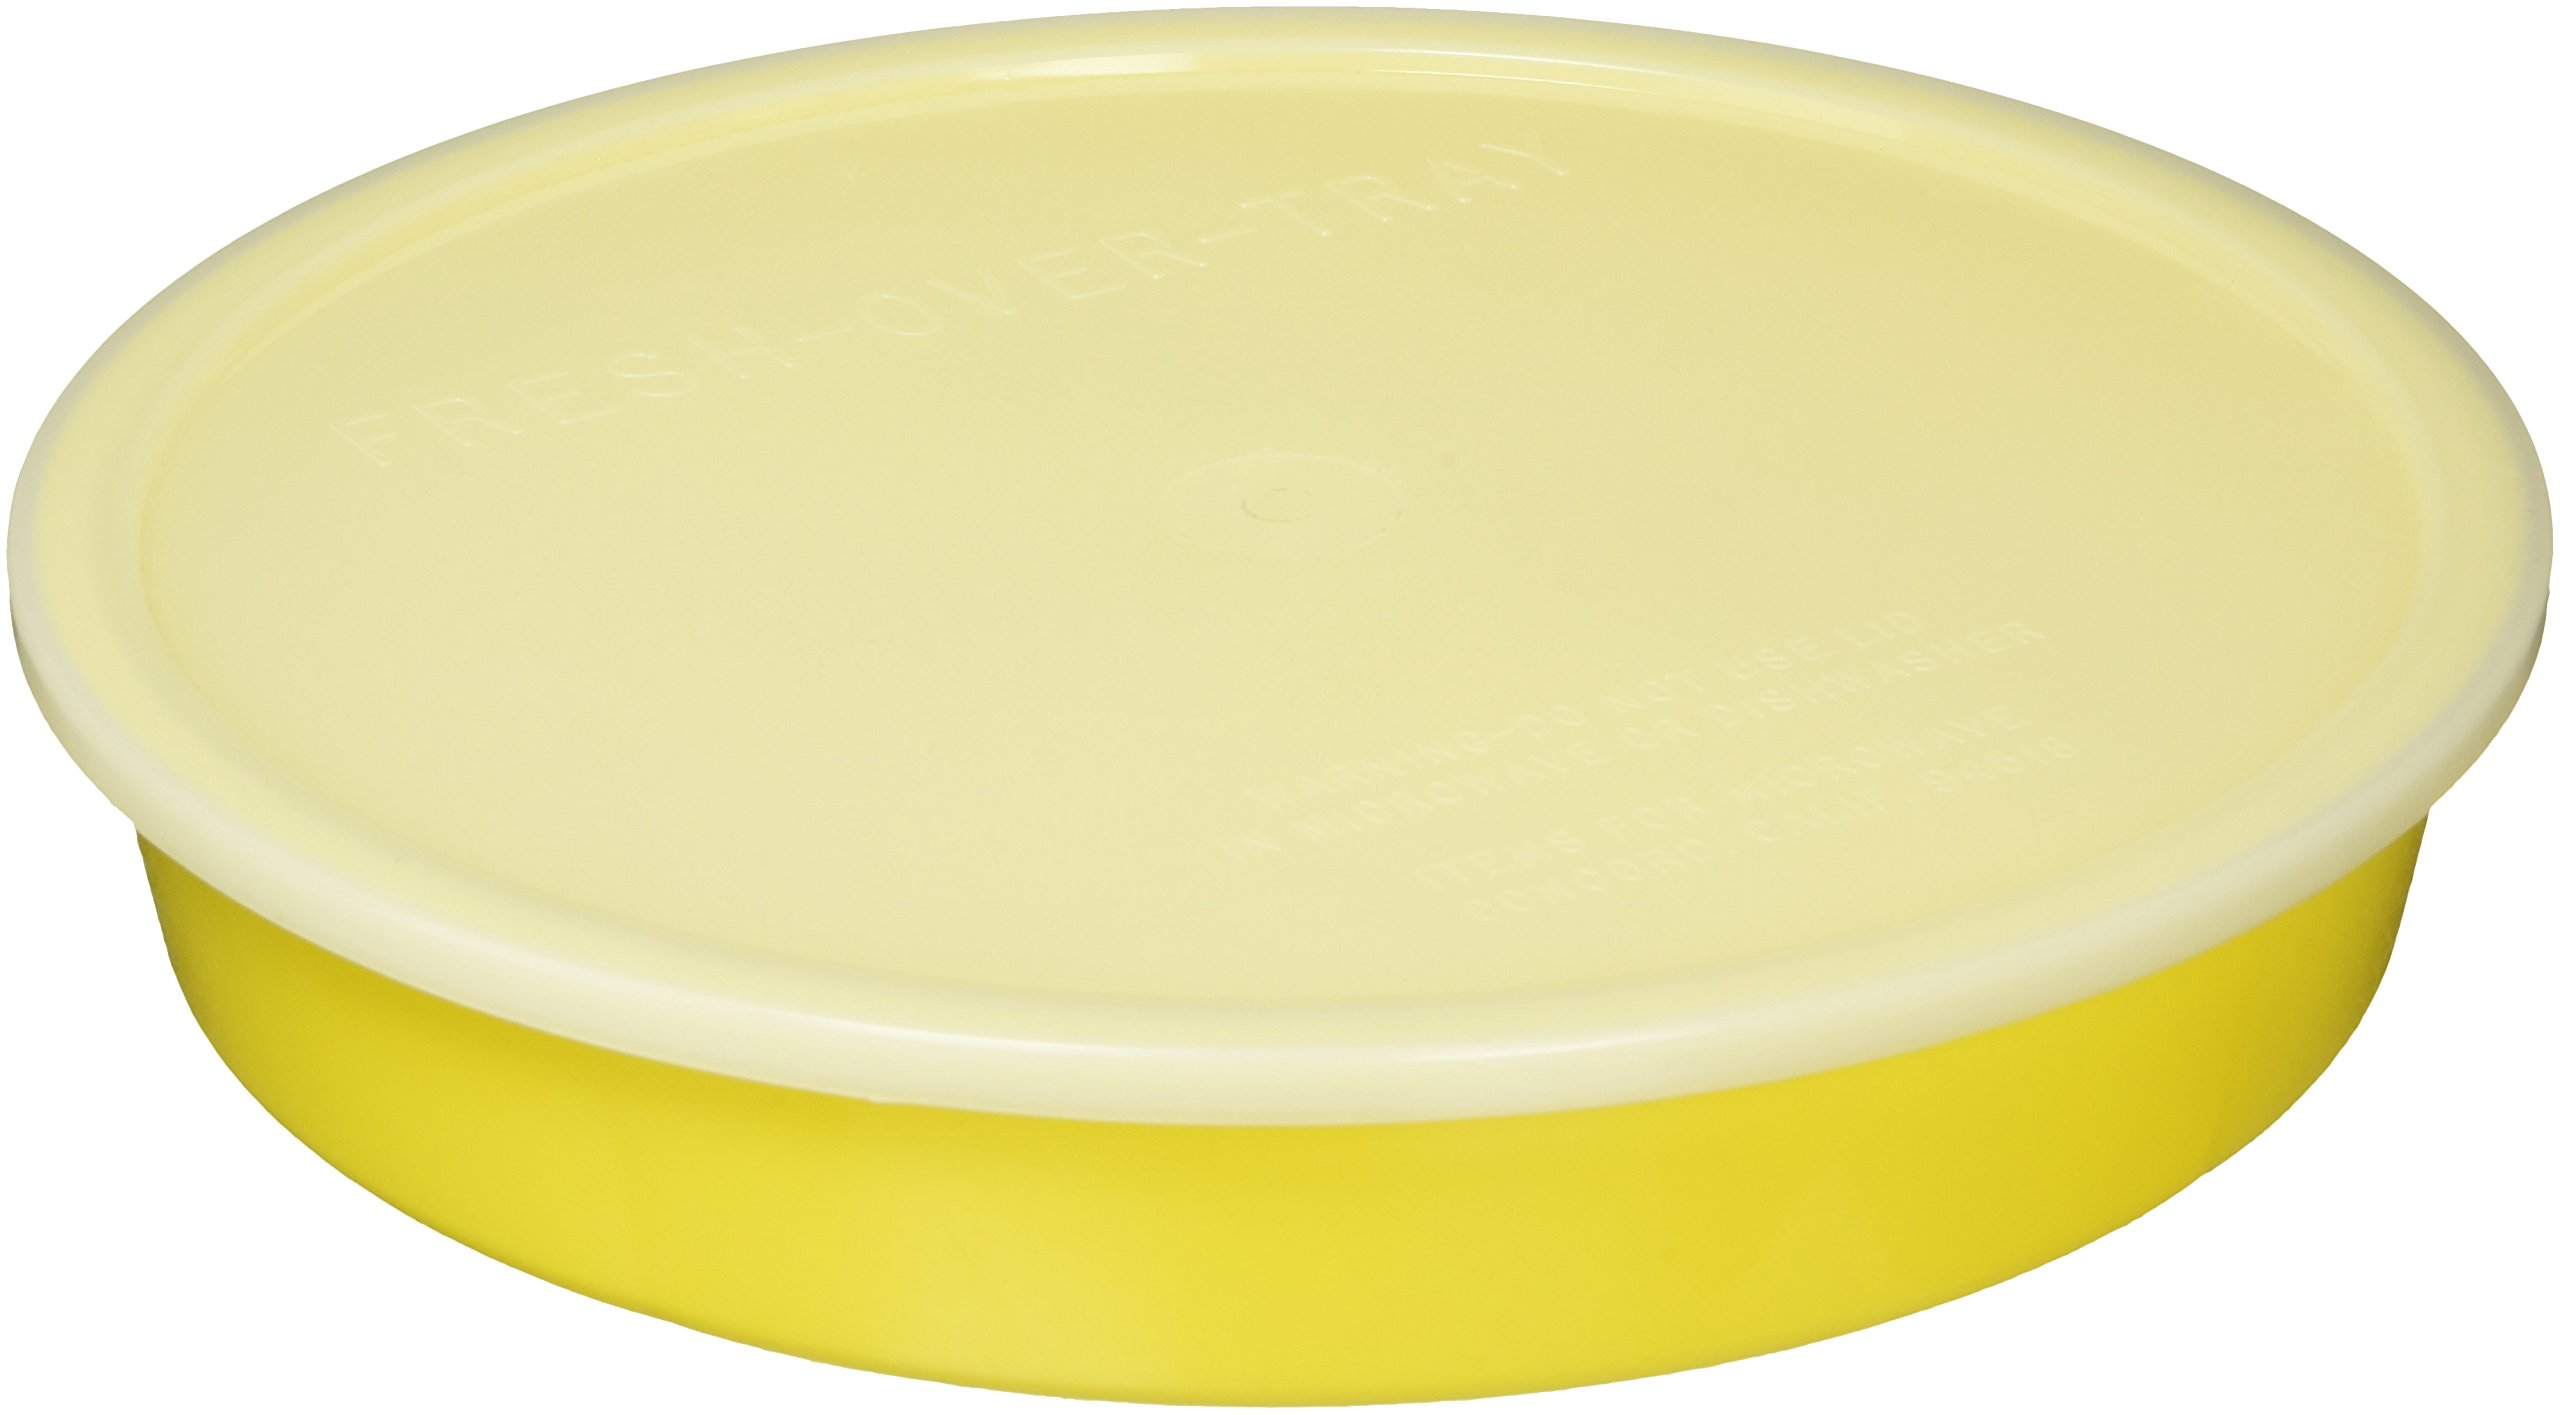 Sammons Preston High-Sided Divided Dish, Yellow, Break-Resistant & Lightweight Polypropylene Plastic, 10'' Diameter, 1.75'' High Vertical Sides & 7/8'' Section Dividers, Includes Lid for Travel & Storage